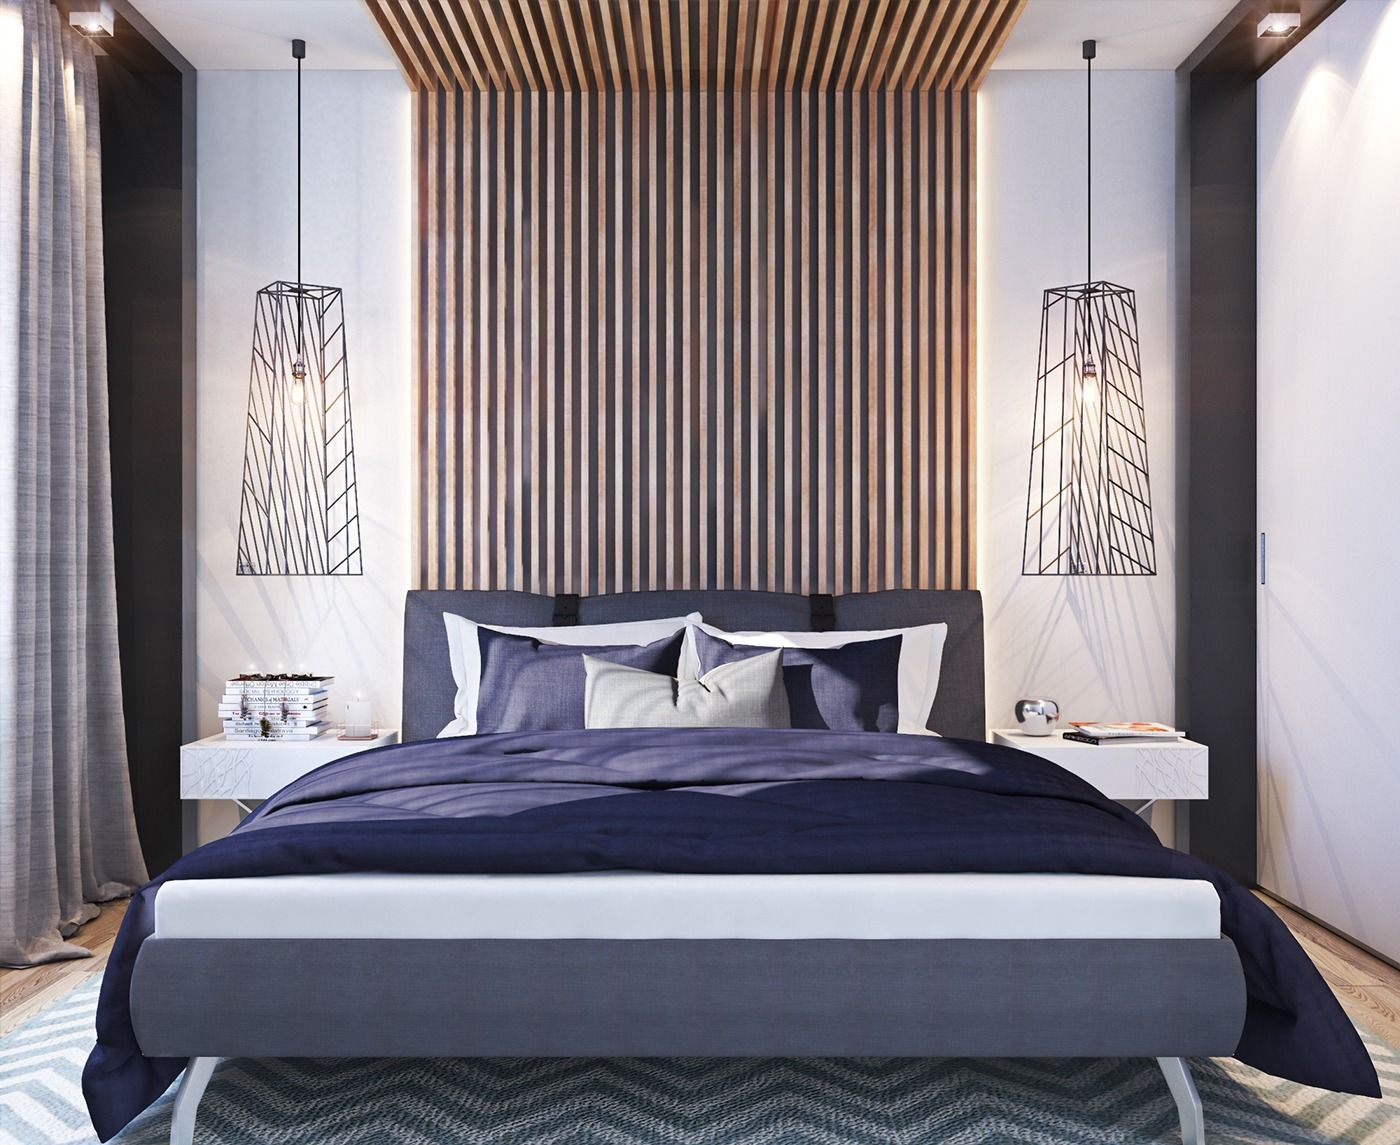 Similarly, the master bedroom is not massive. But simple, relaxing colors like deep purple, gray, and white paired with natural wood makes it easy to settle in for the night, even if there is not a ton of square footage.